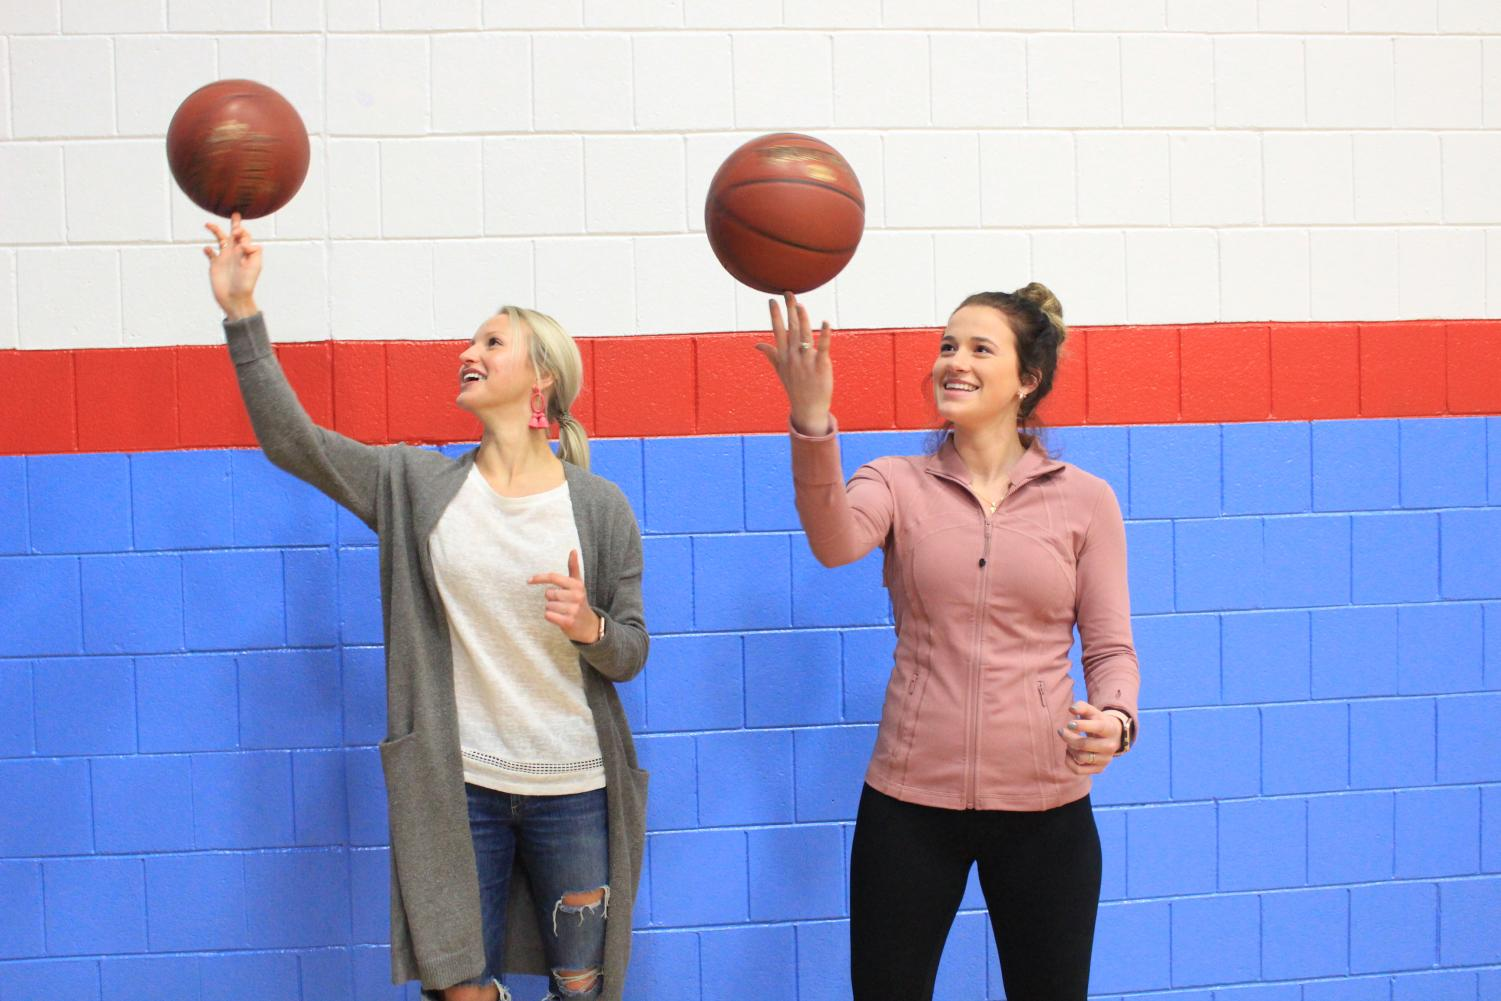 Seniors Chloe Kintop (left) and Maddy Myer twirl their basketballs in the gymnasium on Nov 16. Myer and Kintop are both part of the basketball team.